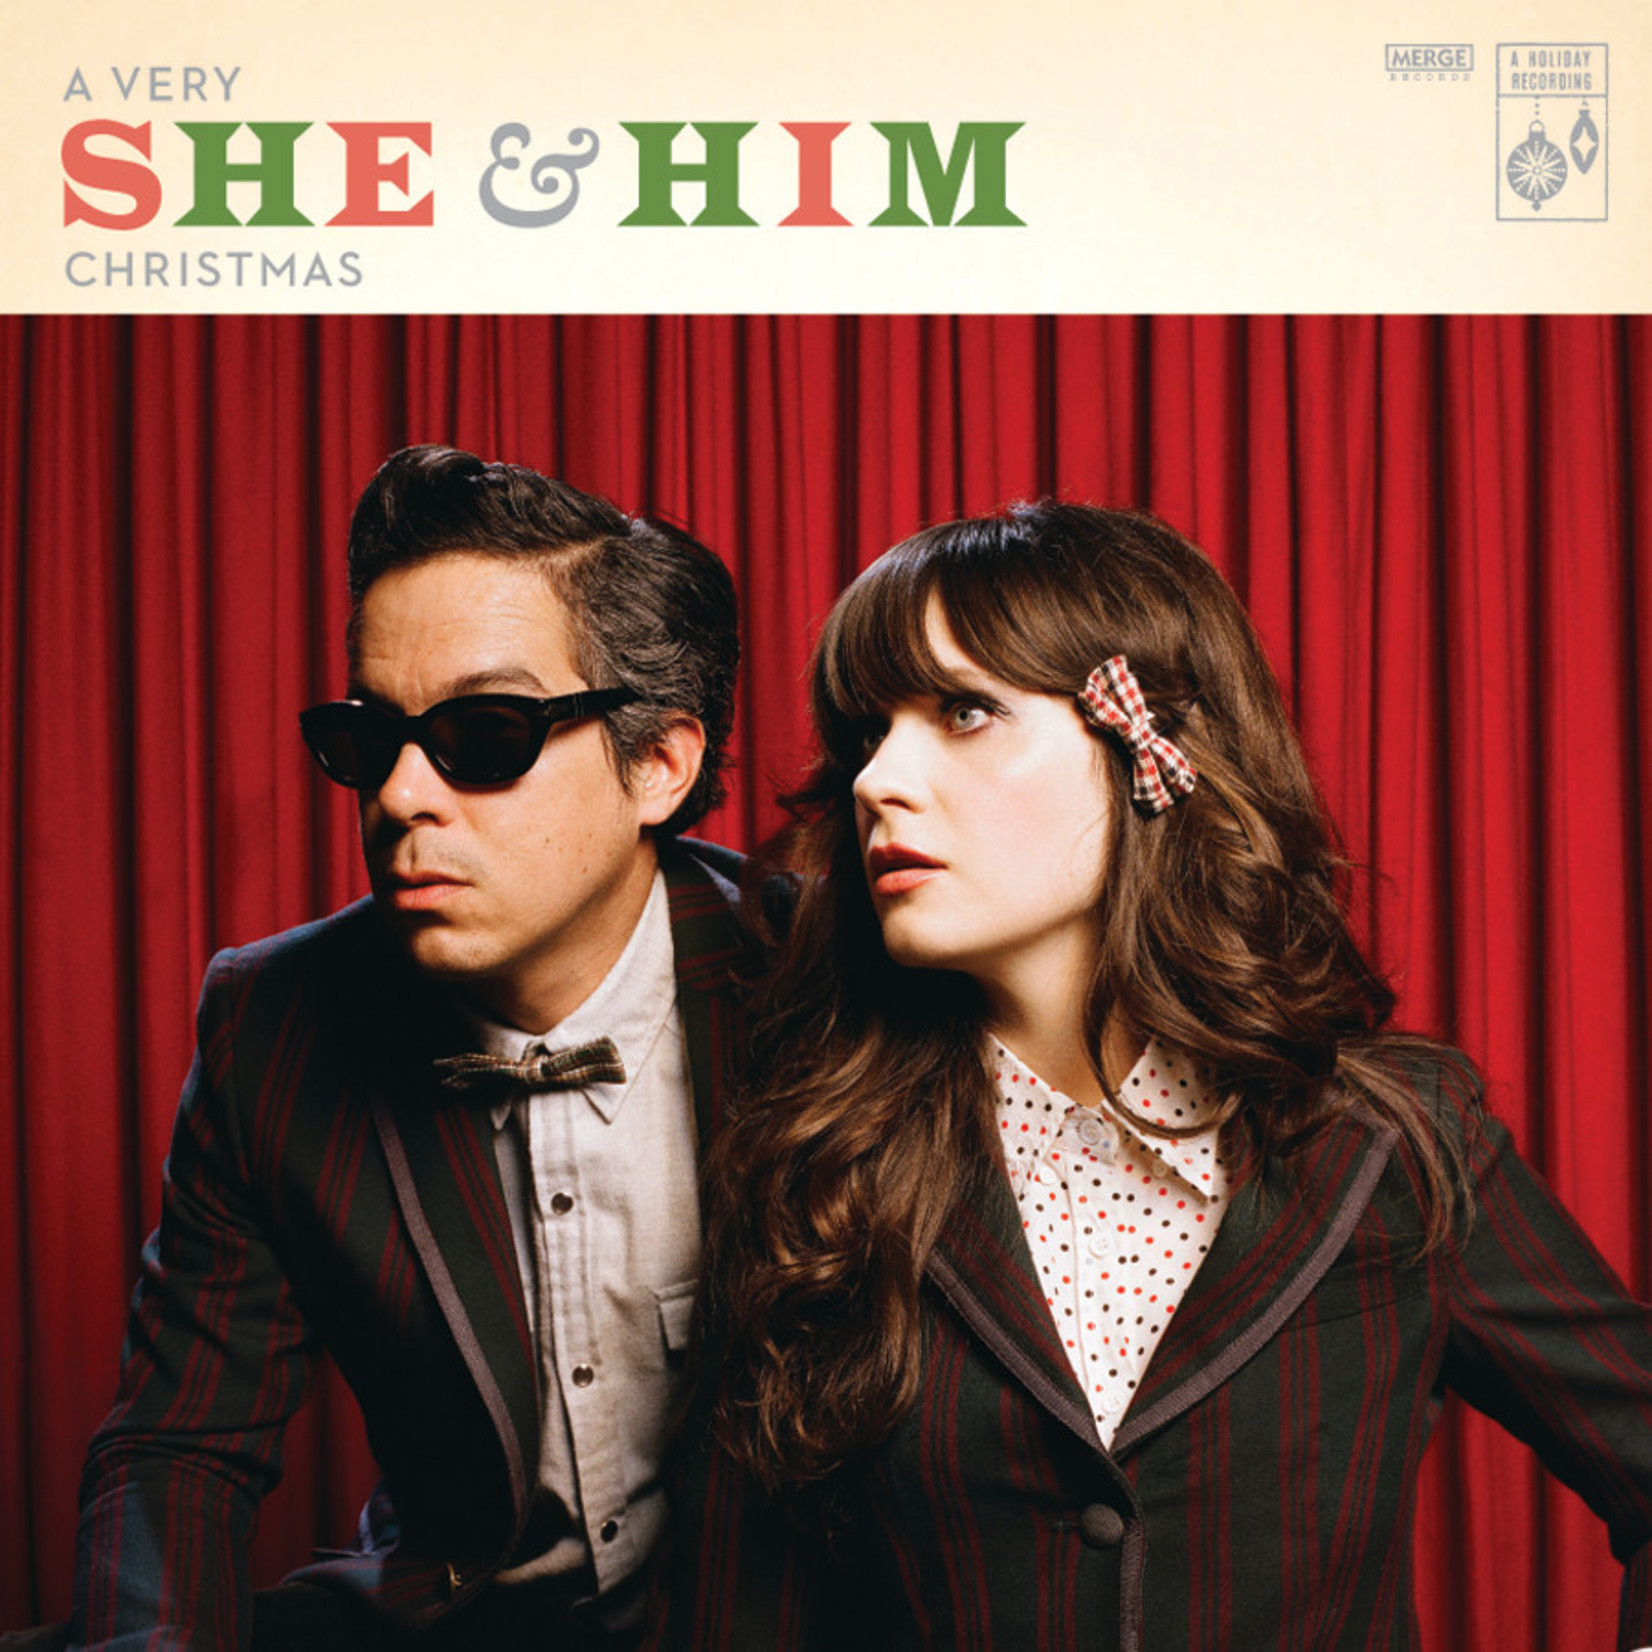 """[New] She And Him: A Very She And Him Christmas (10th Ann/bonus 7"""") [MERGE]"""